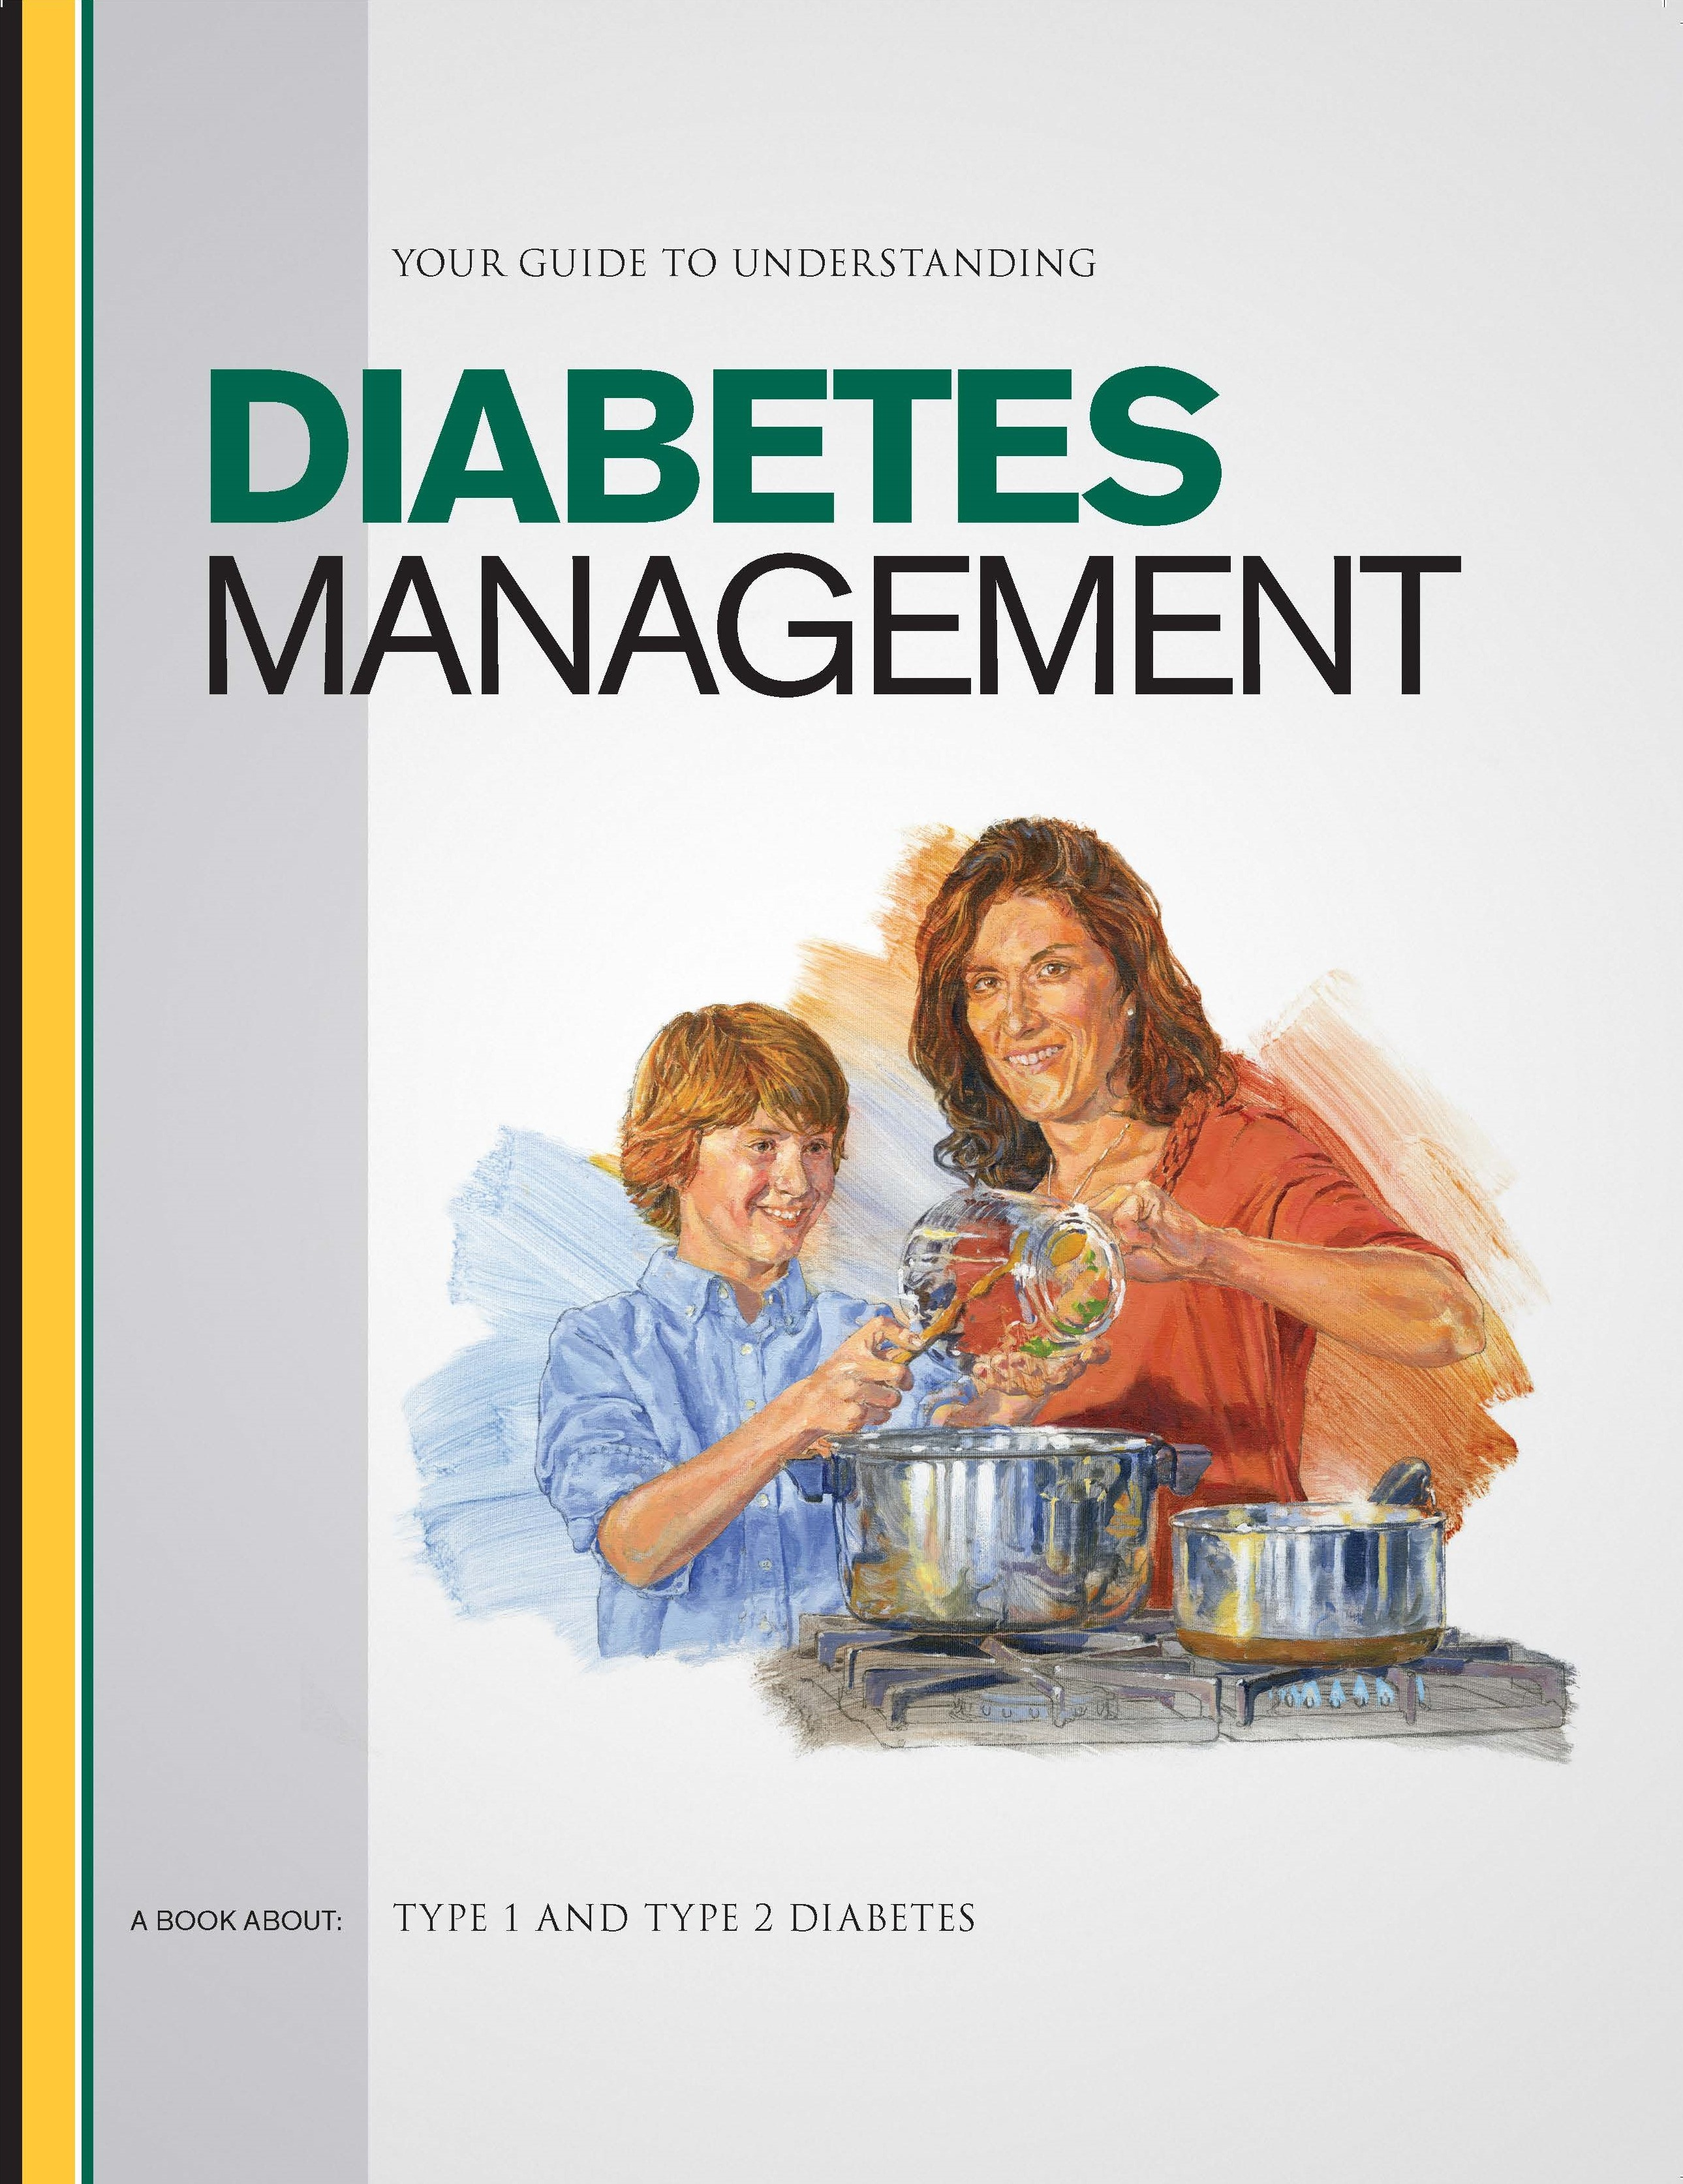 New call-to-action  <https://www.hercpublishing.com/publication/diabetes-management/>